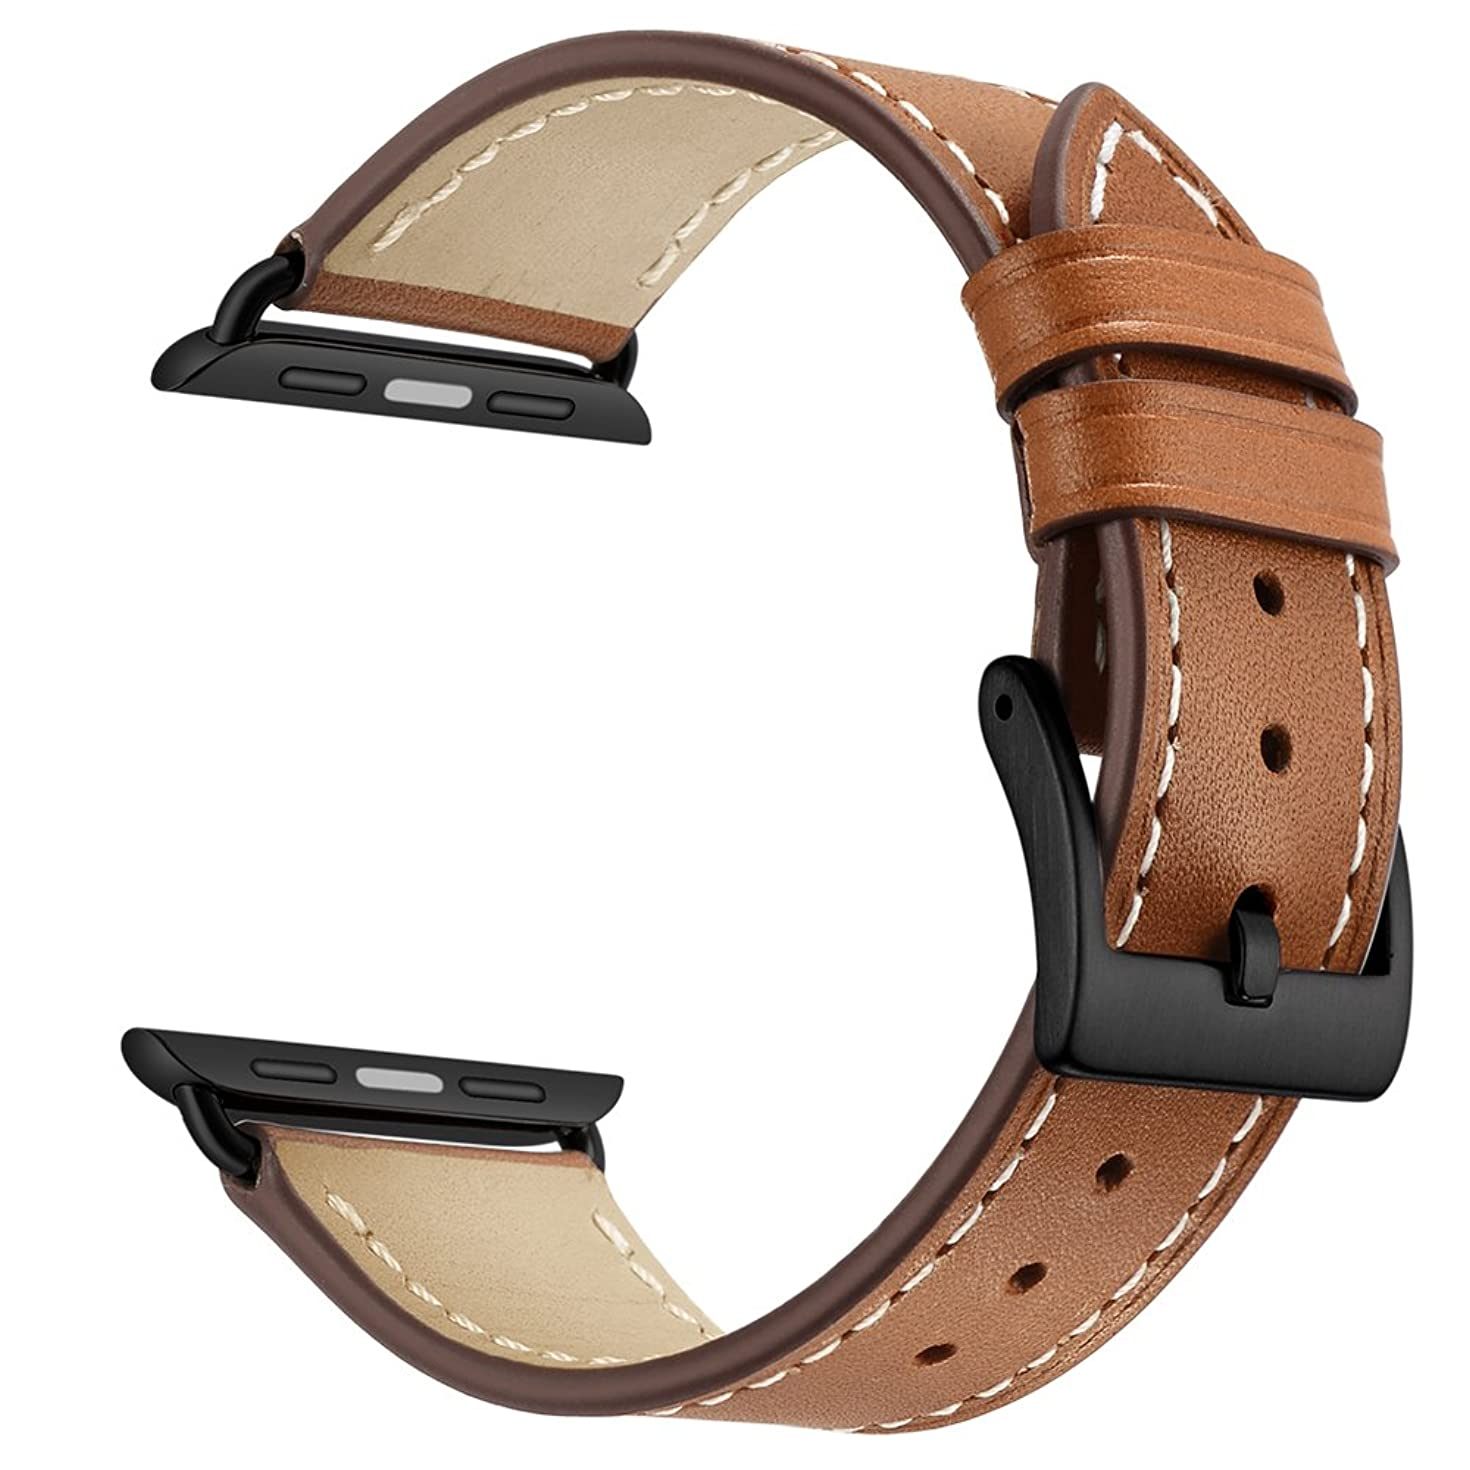 OXWALLEN Compatible for Apple Watch Band 38mm 40mm 42mm 44mm,Top Grain Genuine Leather Watch Strap Compatible with iWatch Series 4 & Series 3 Series 2 Series 1 Sport and Edition